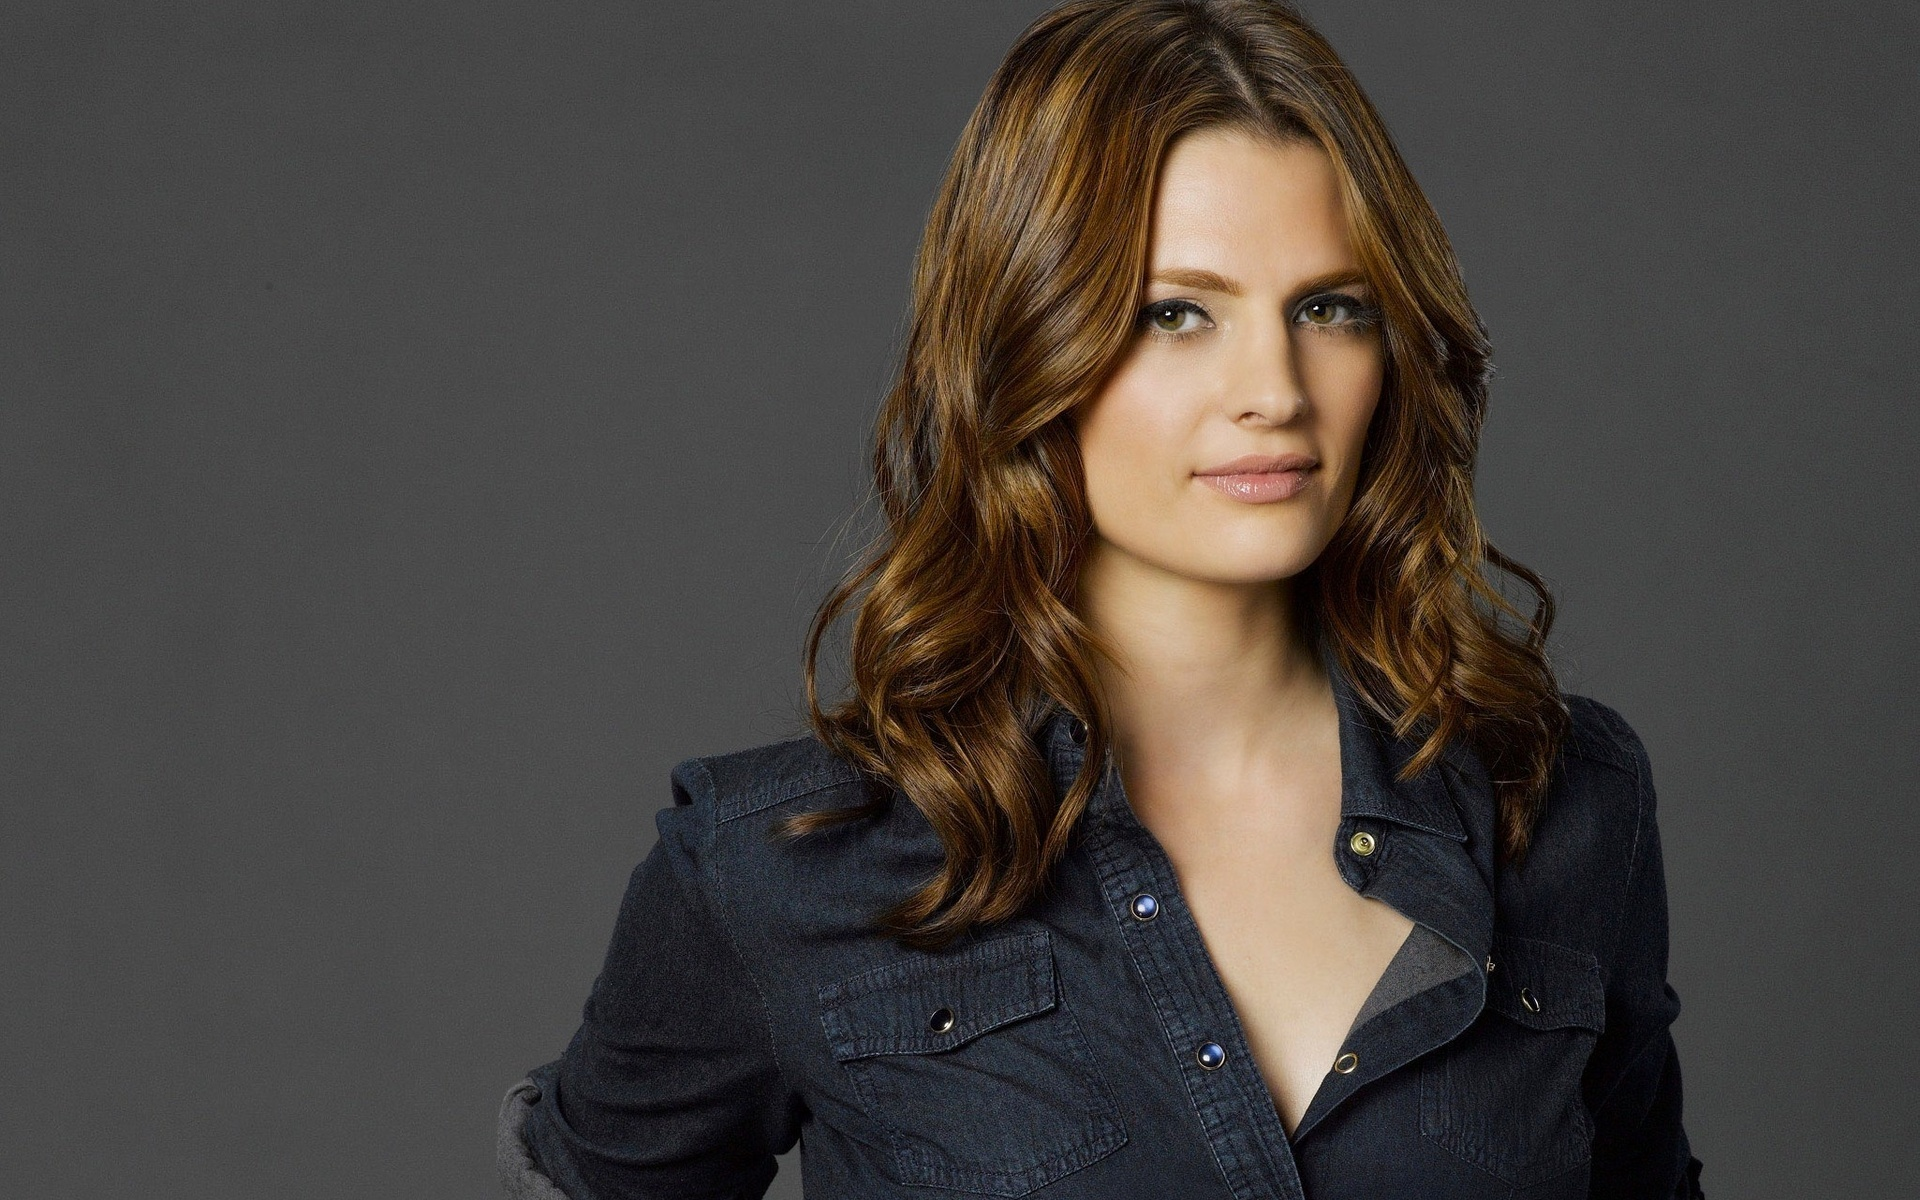 cool picture collection of actress Stana Katic. Download Stana Katic Wallpaper